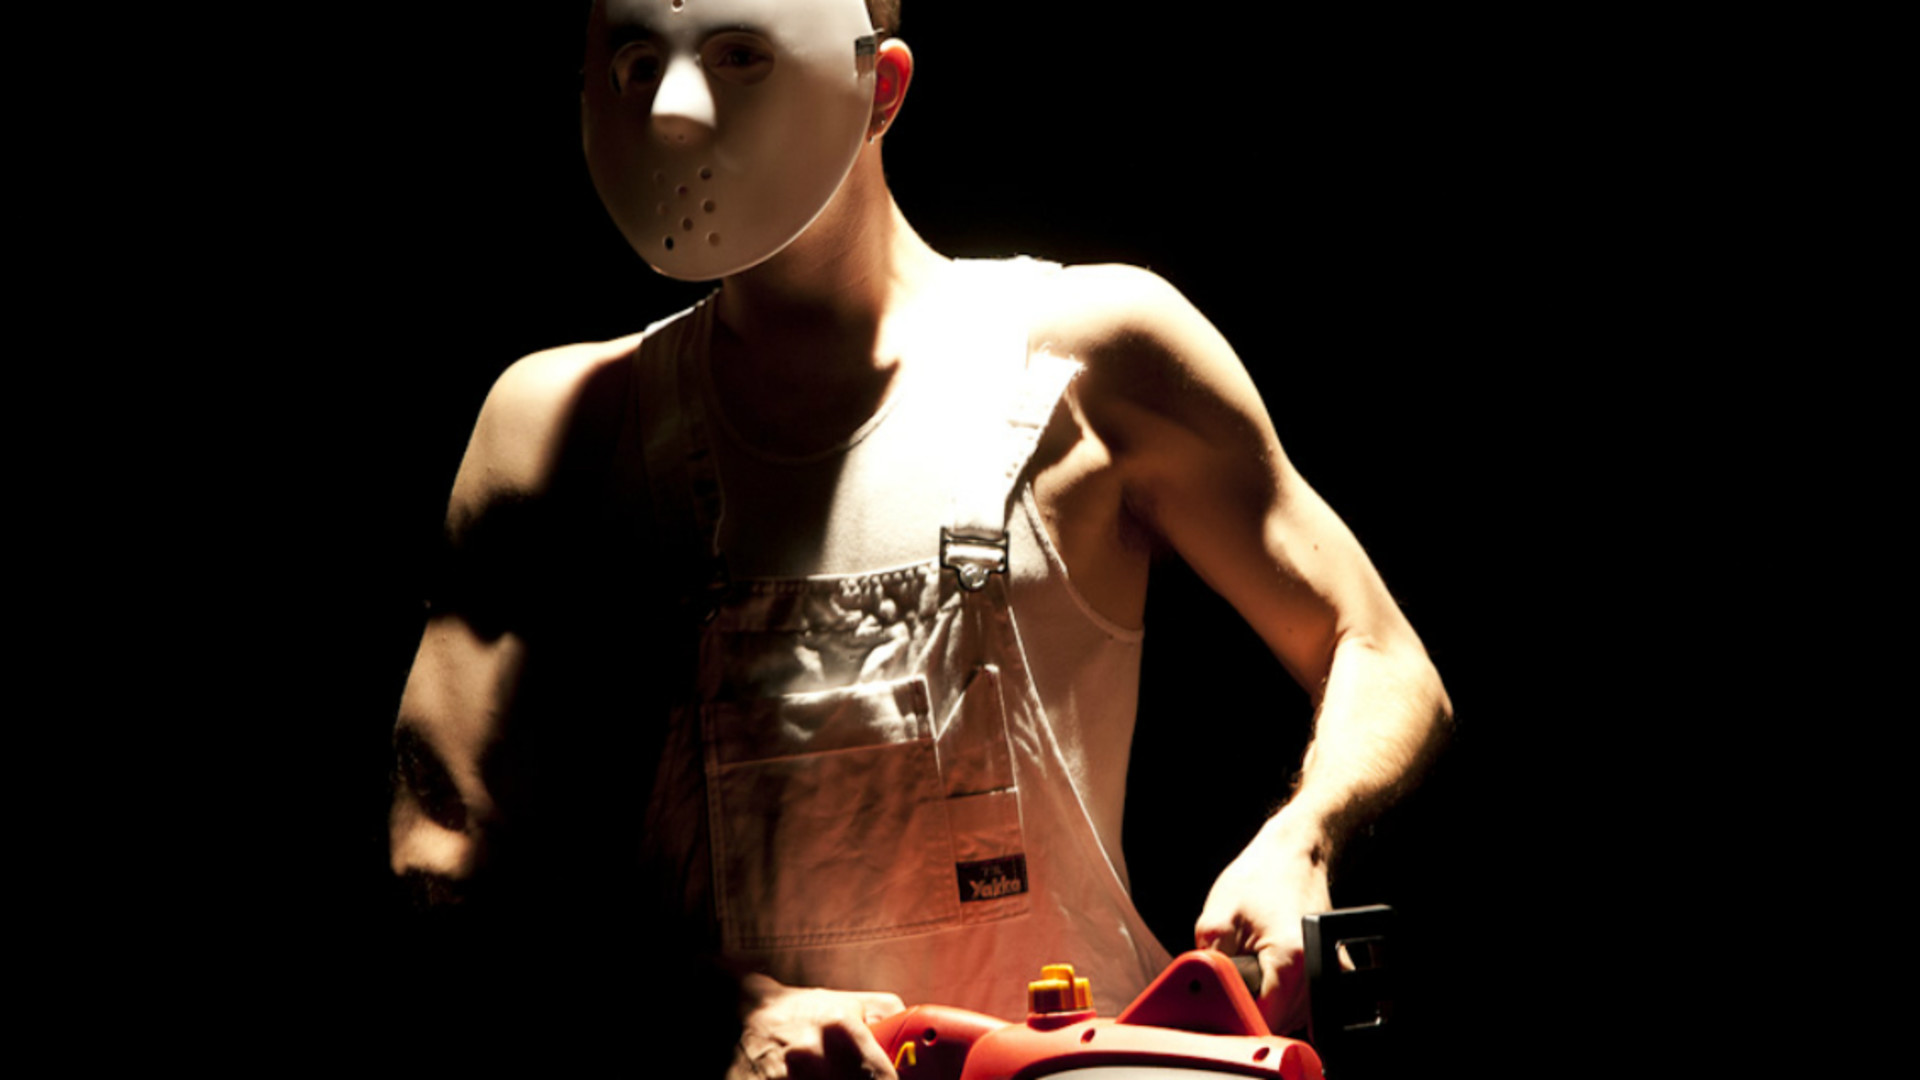 A close up of a man in white dungarees, singlet and white mask holding a red chainsaw is spotlit from above in a dark room